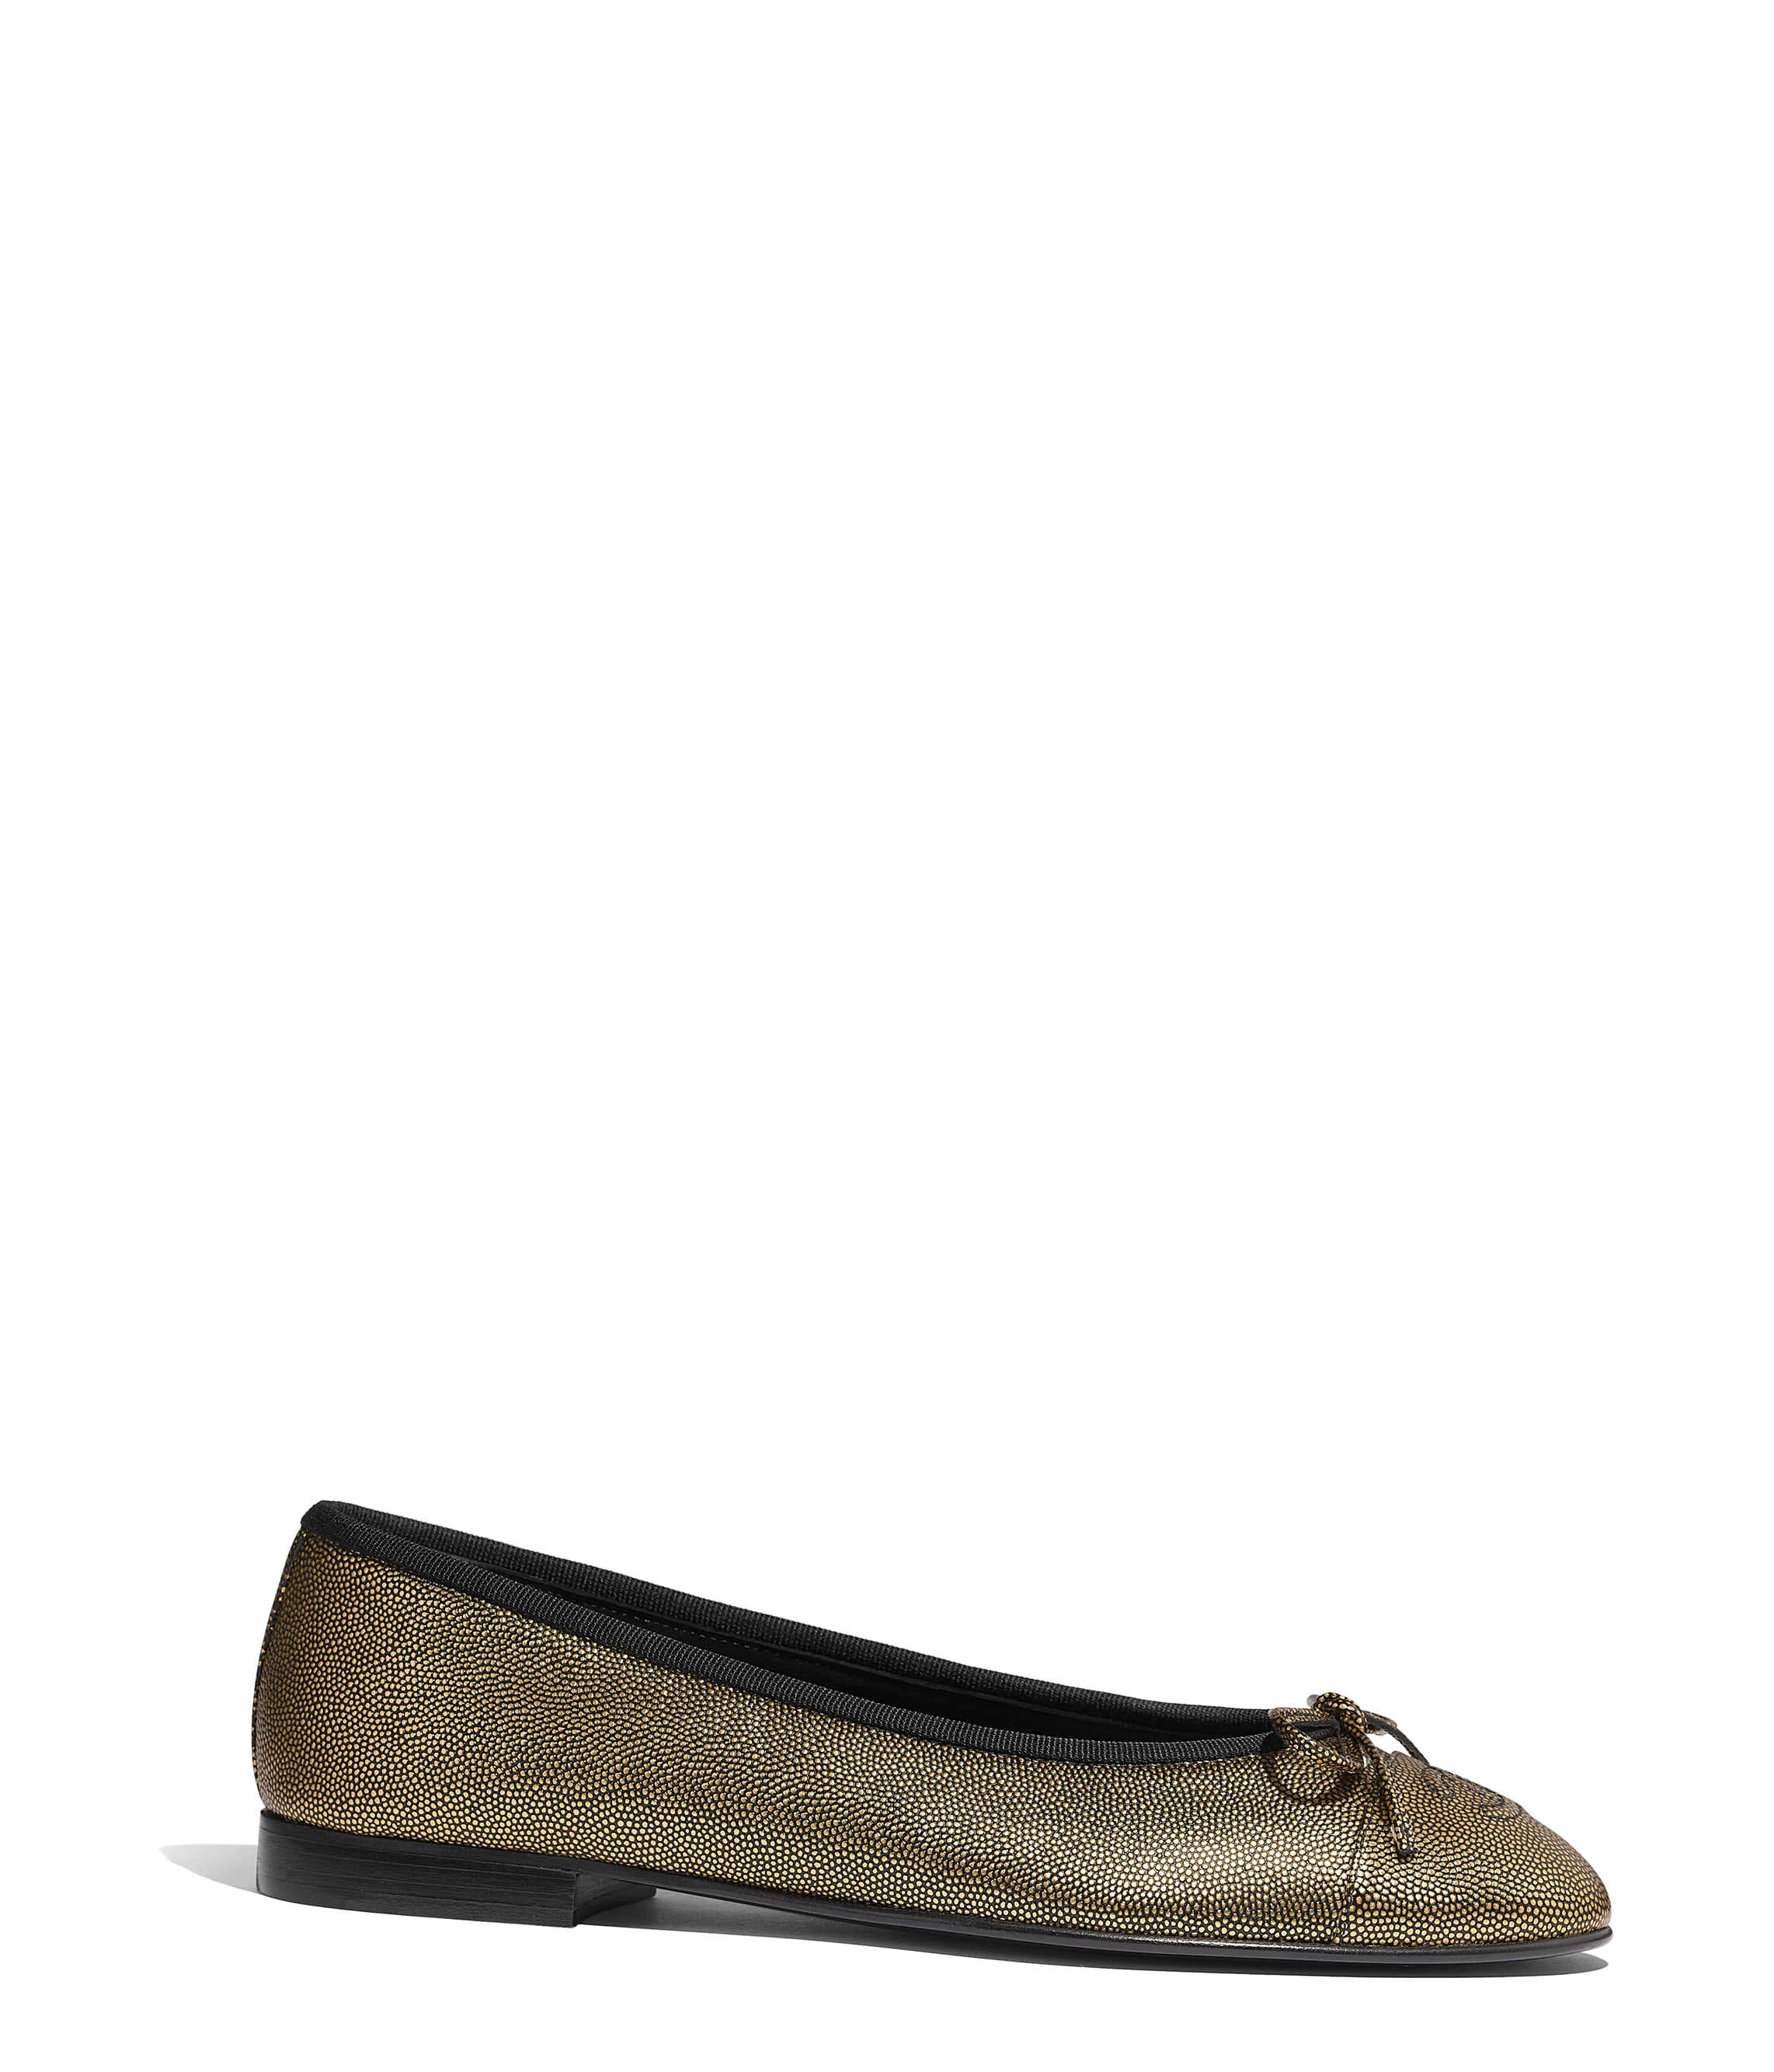 2c53d9fd5 Chaussures & Souliers - CHANEL